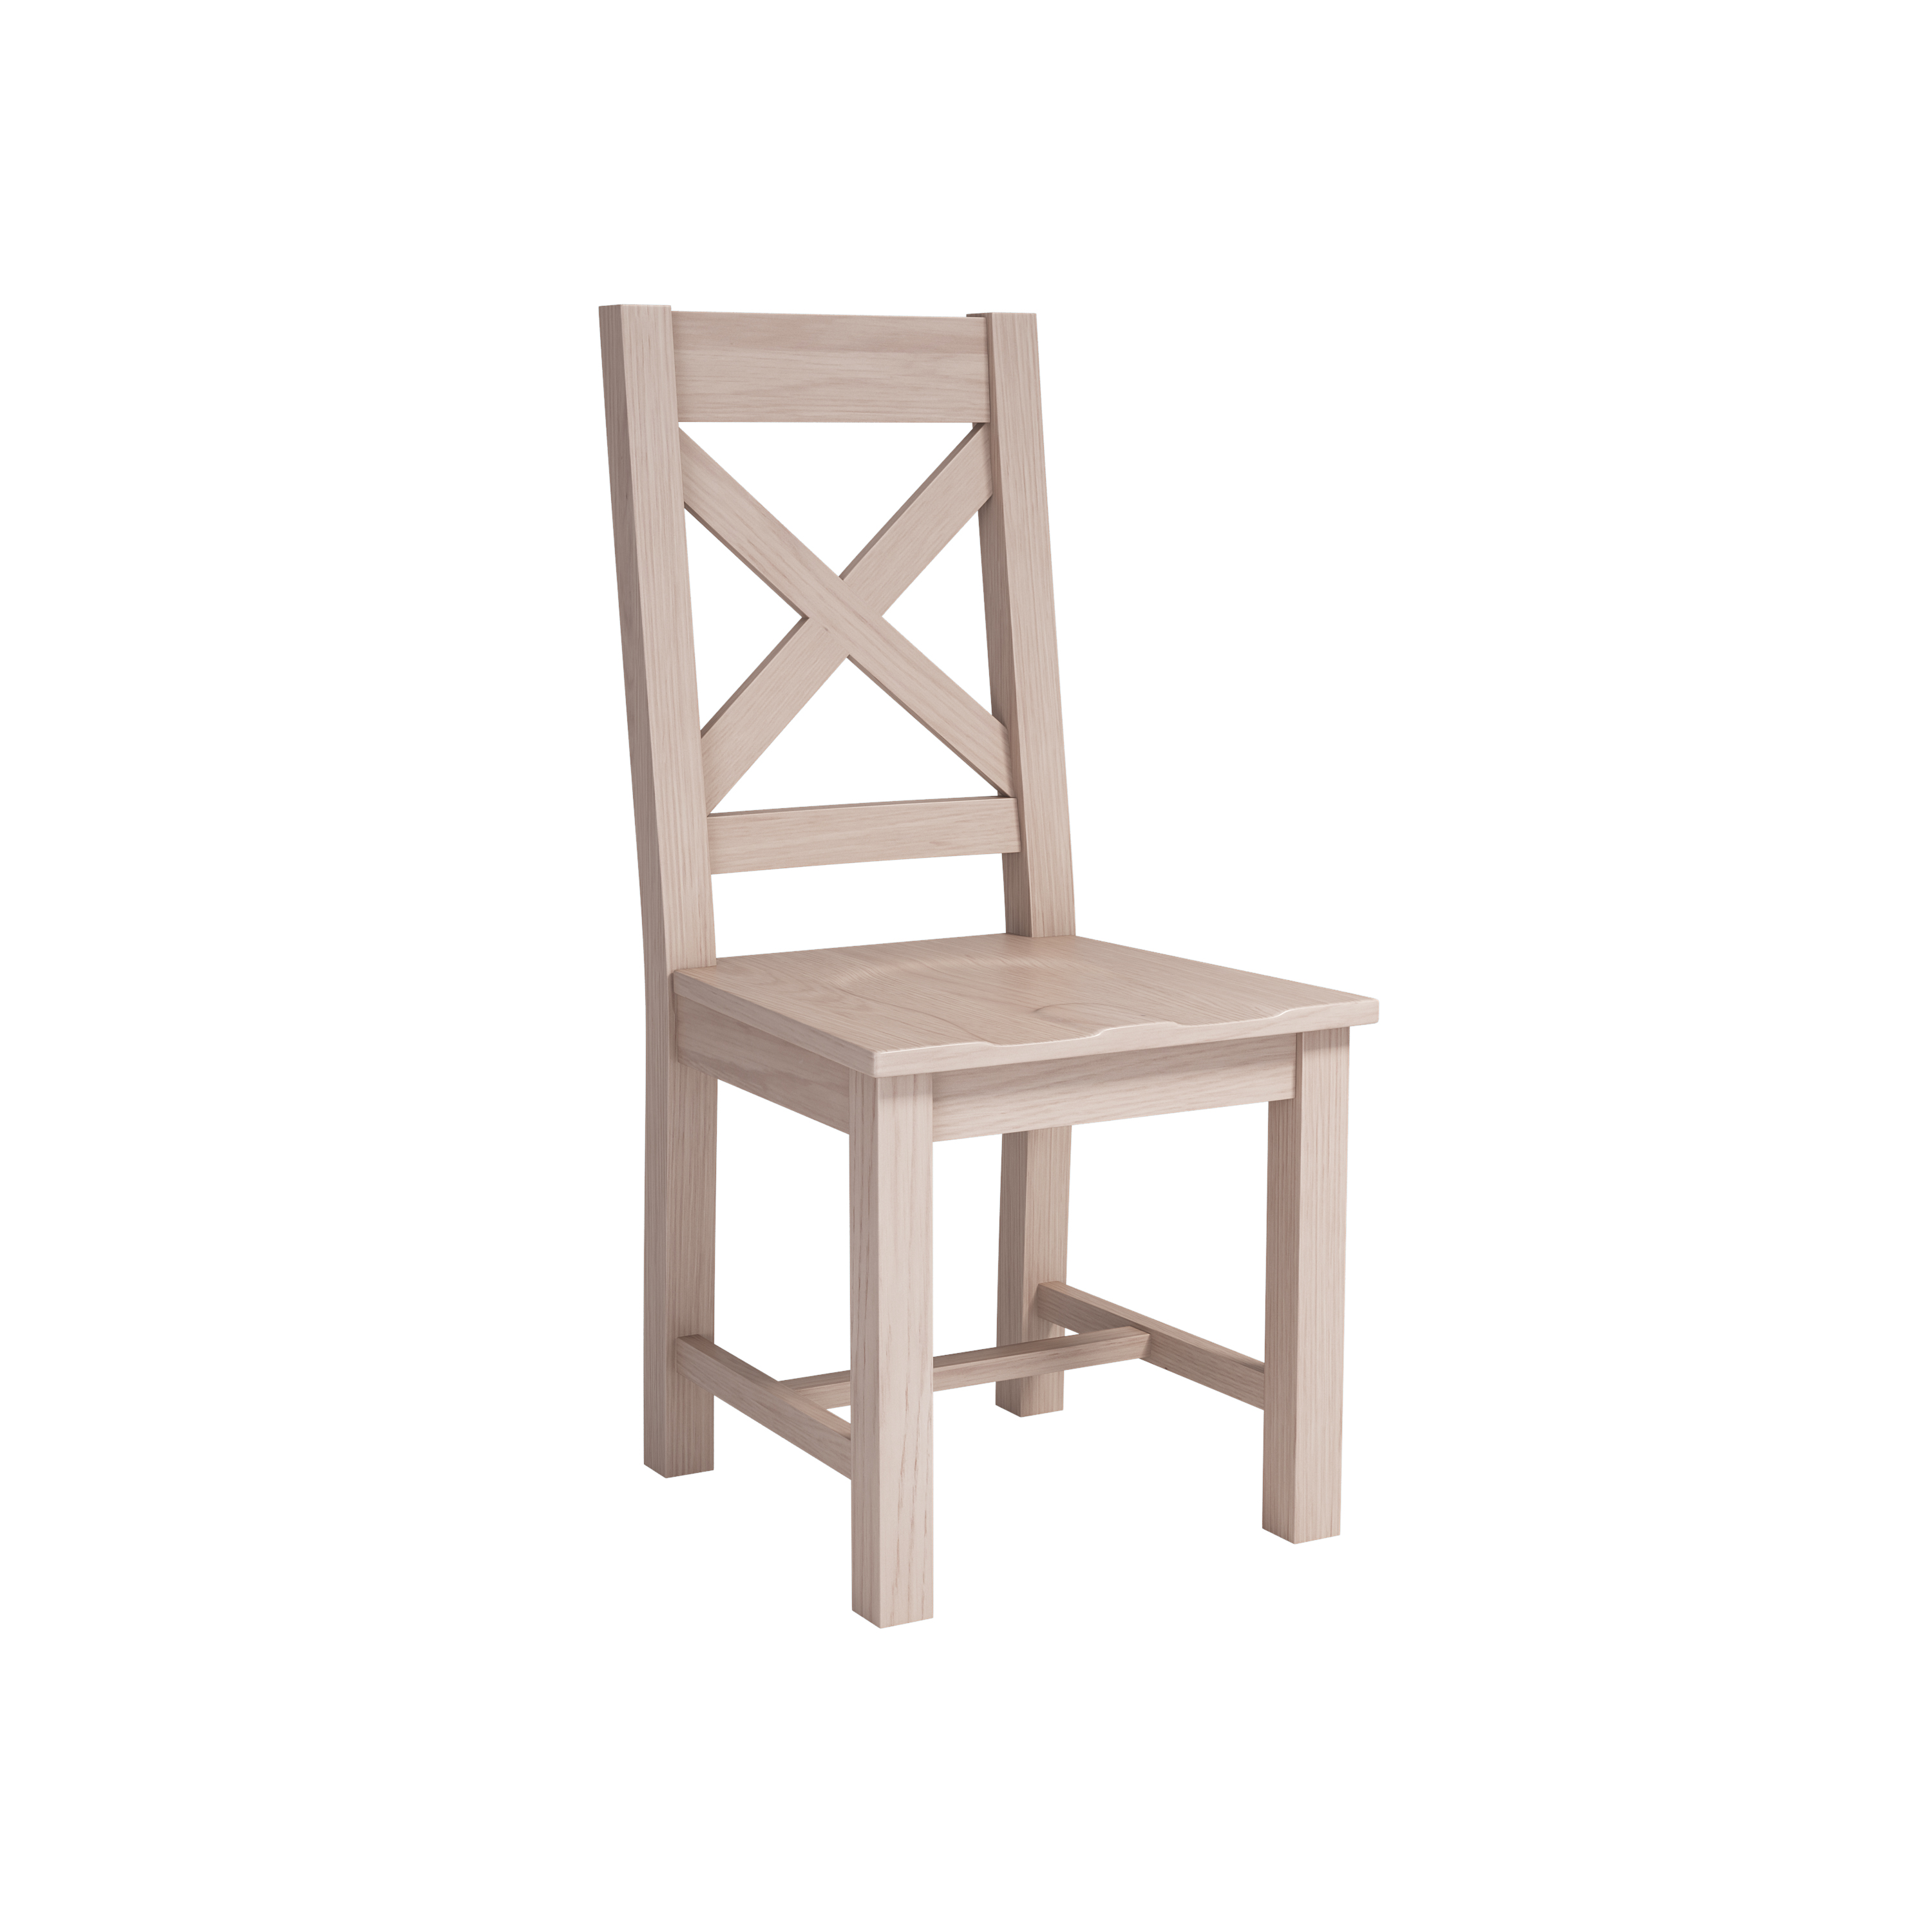 smoked oak cross back chair